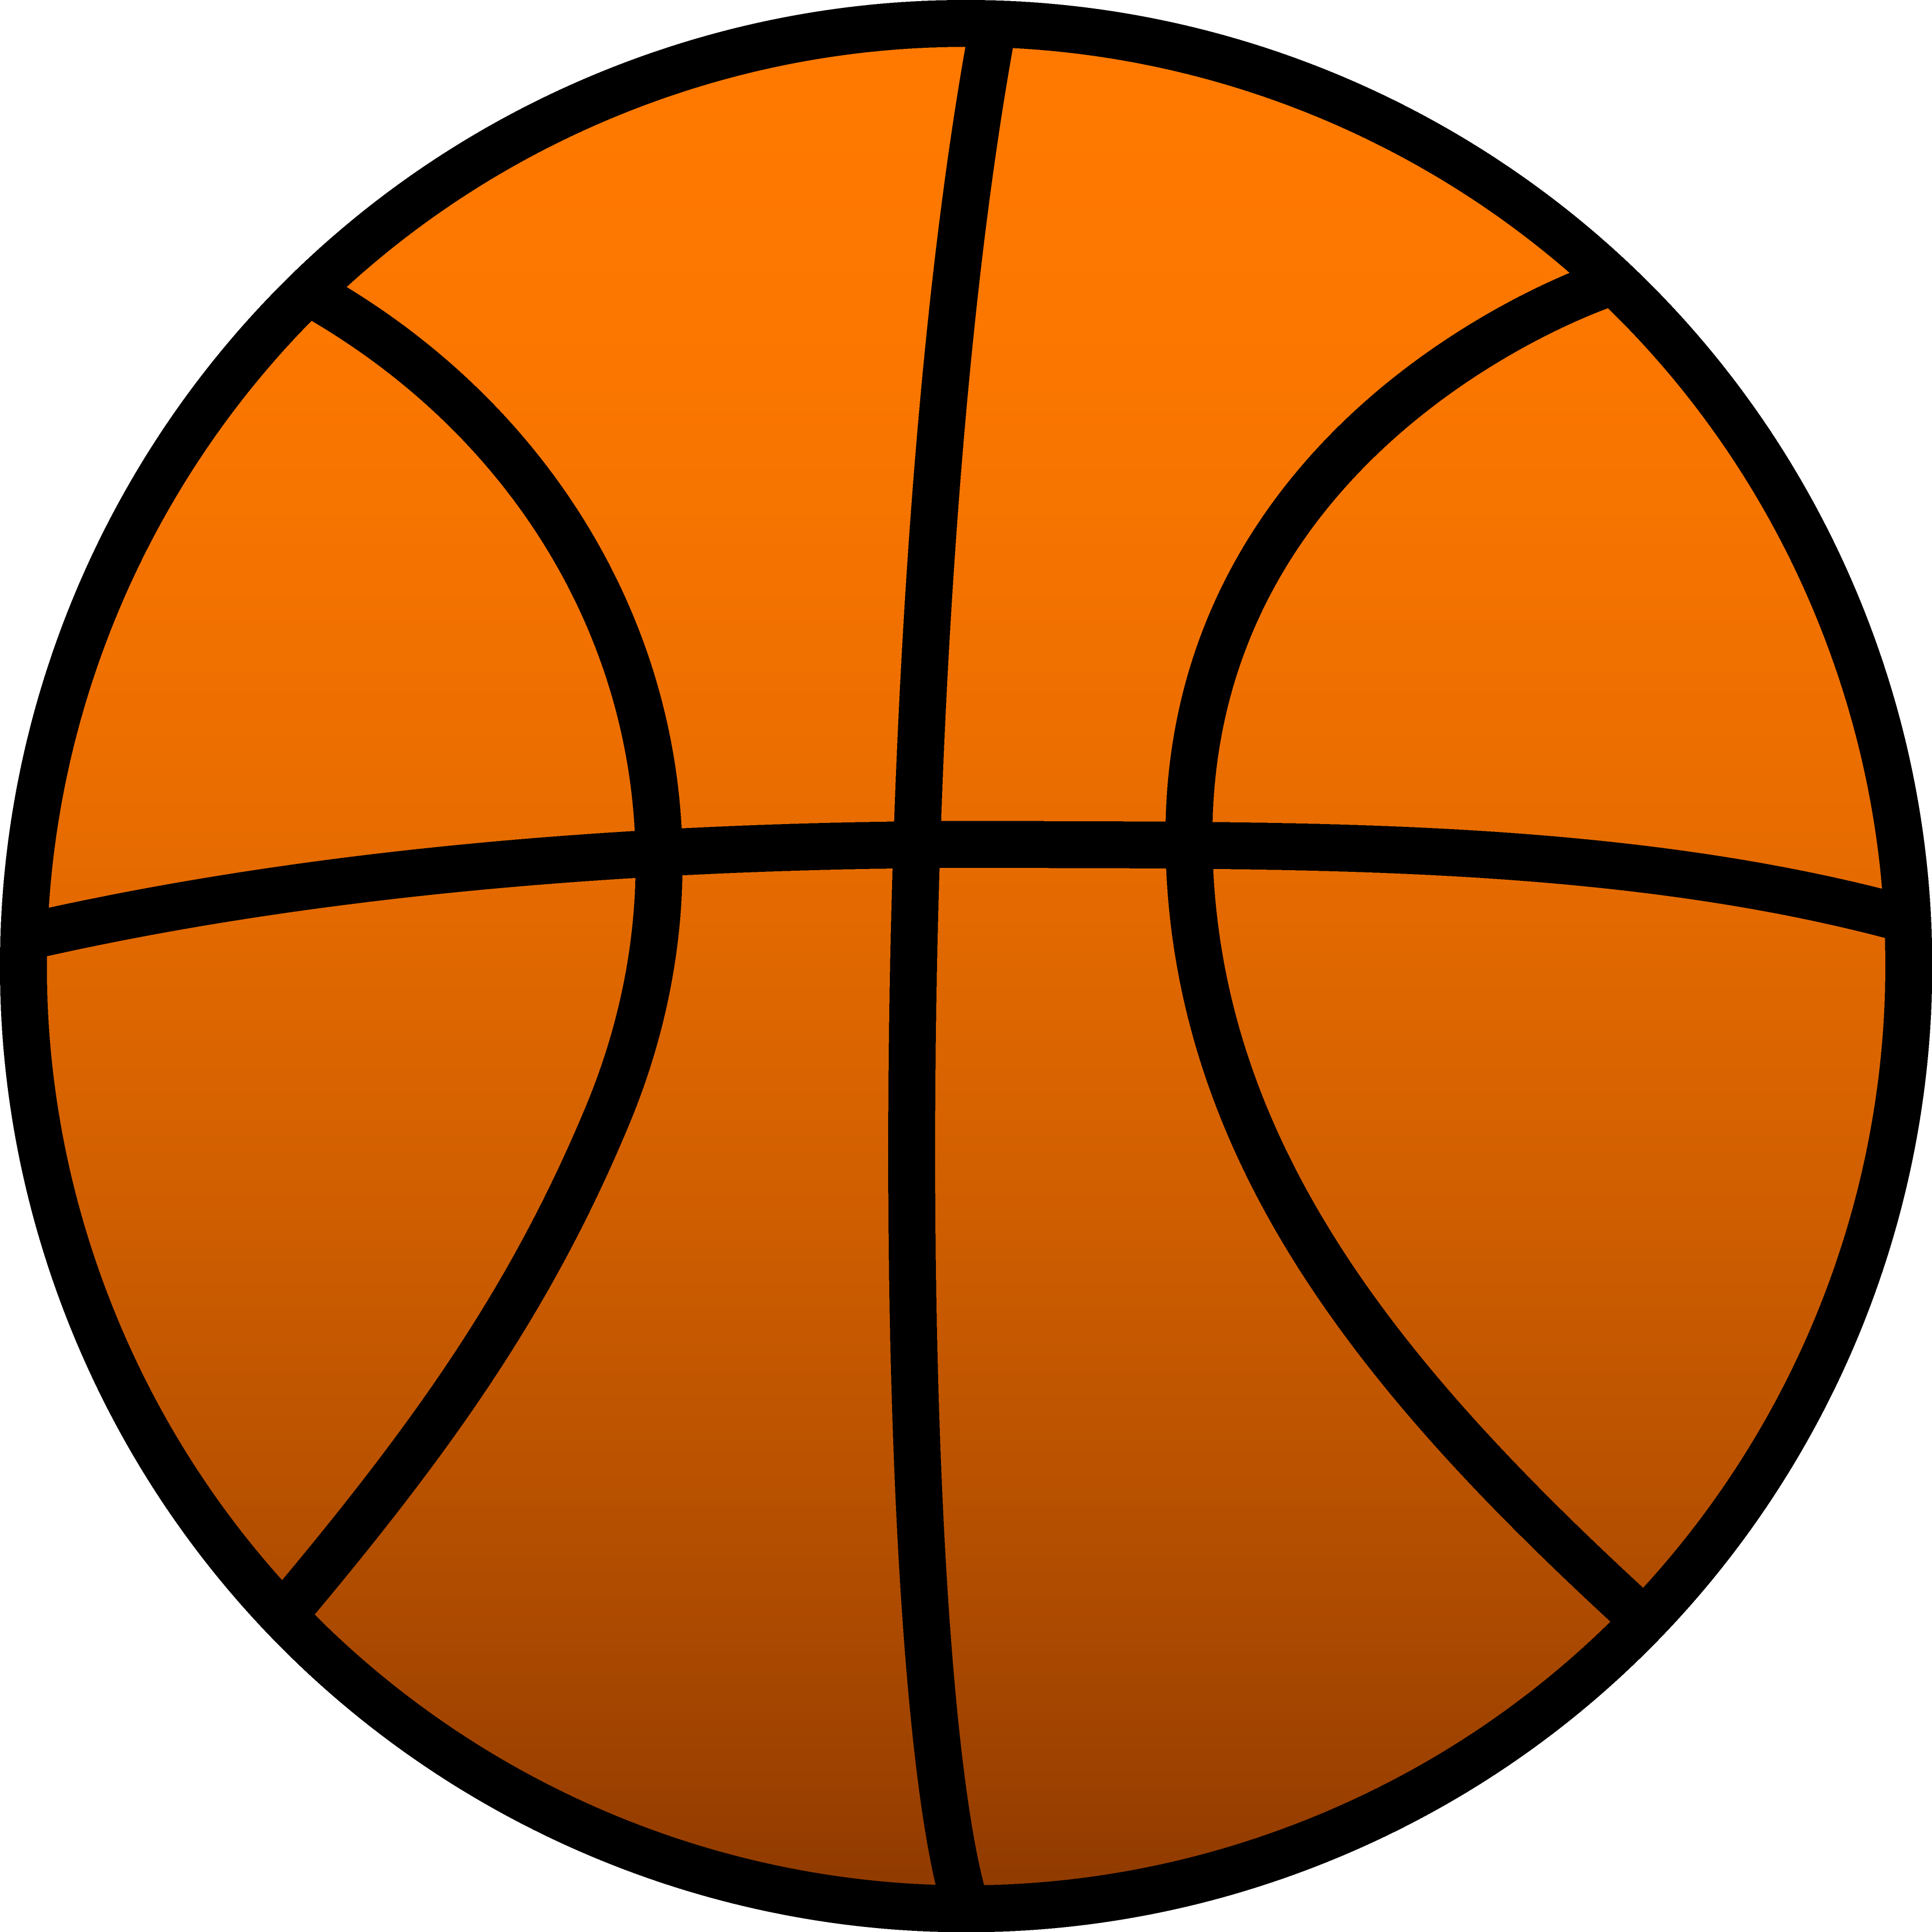 Basketball clip art clipart panda free clipart images - Ball image download ...